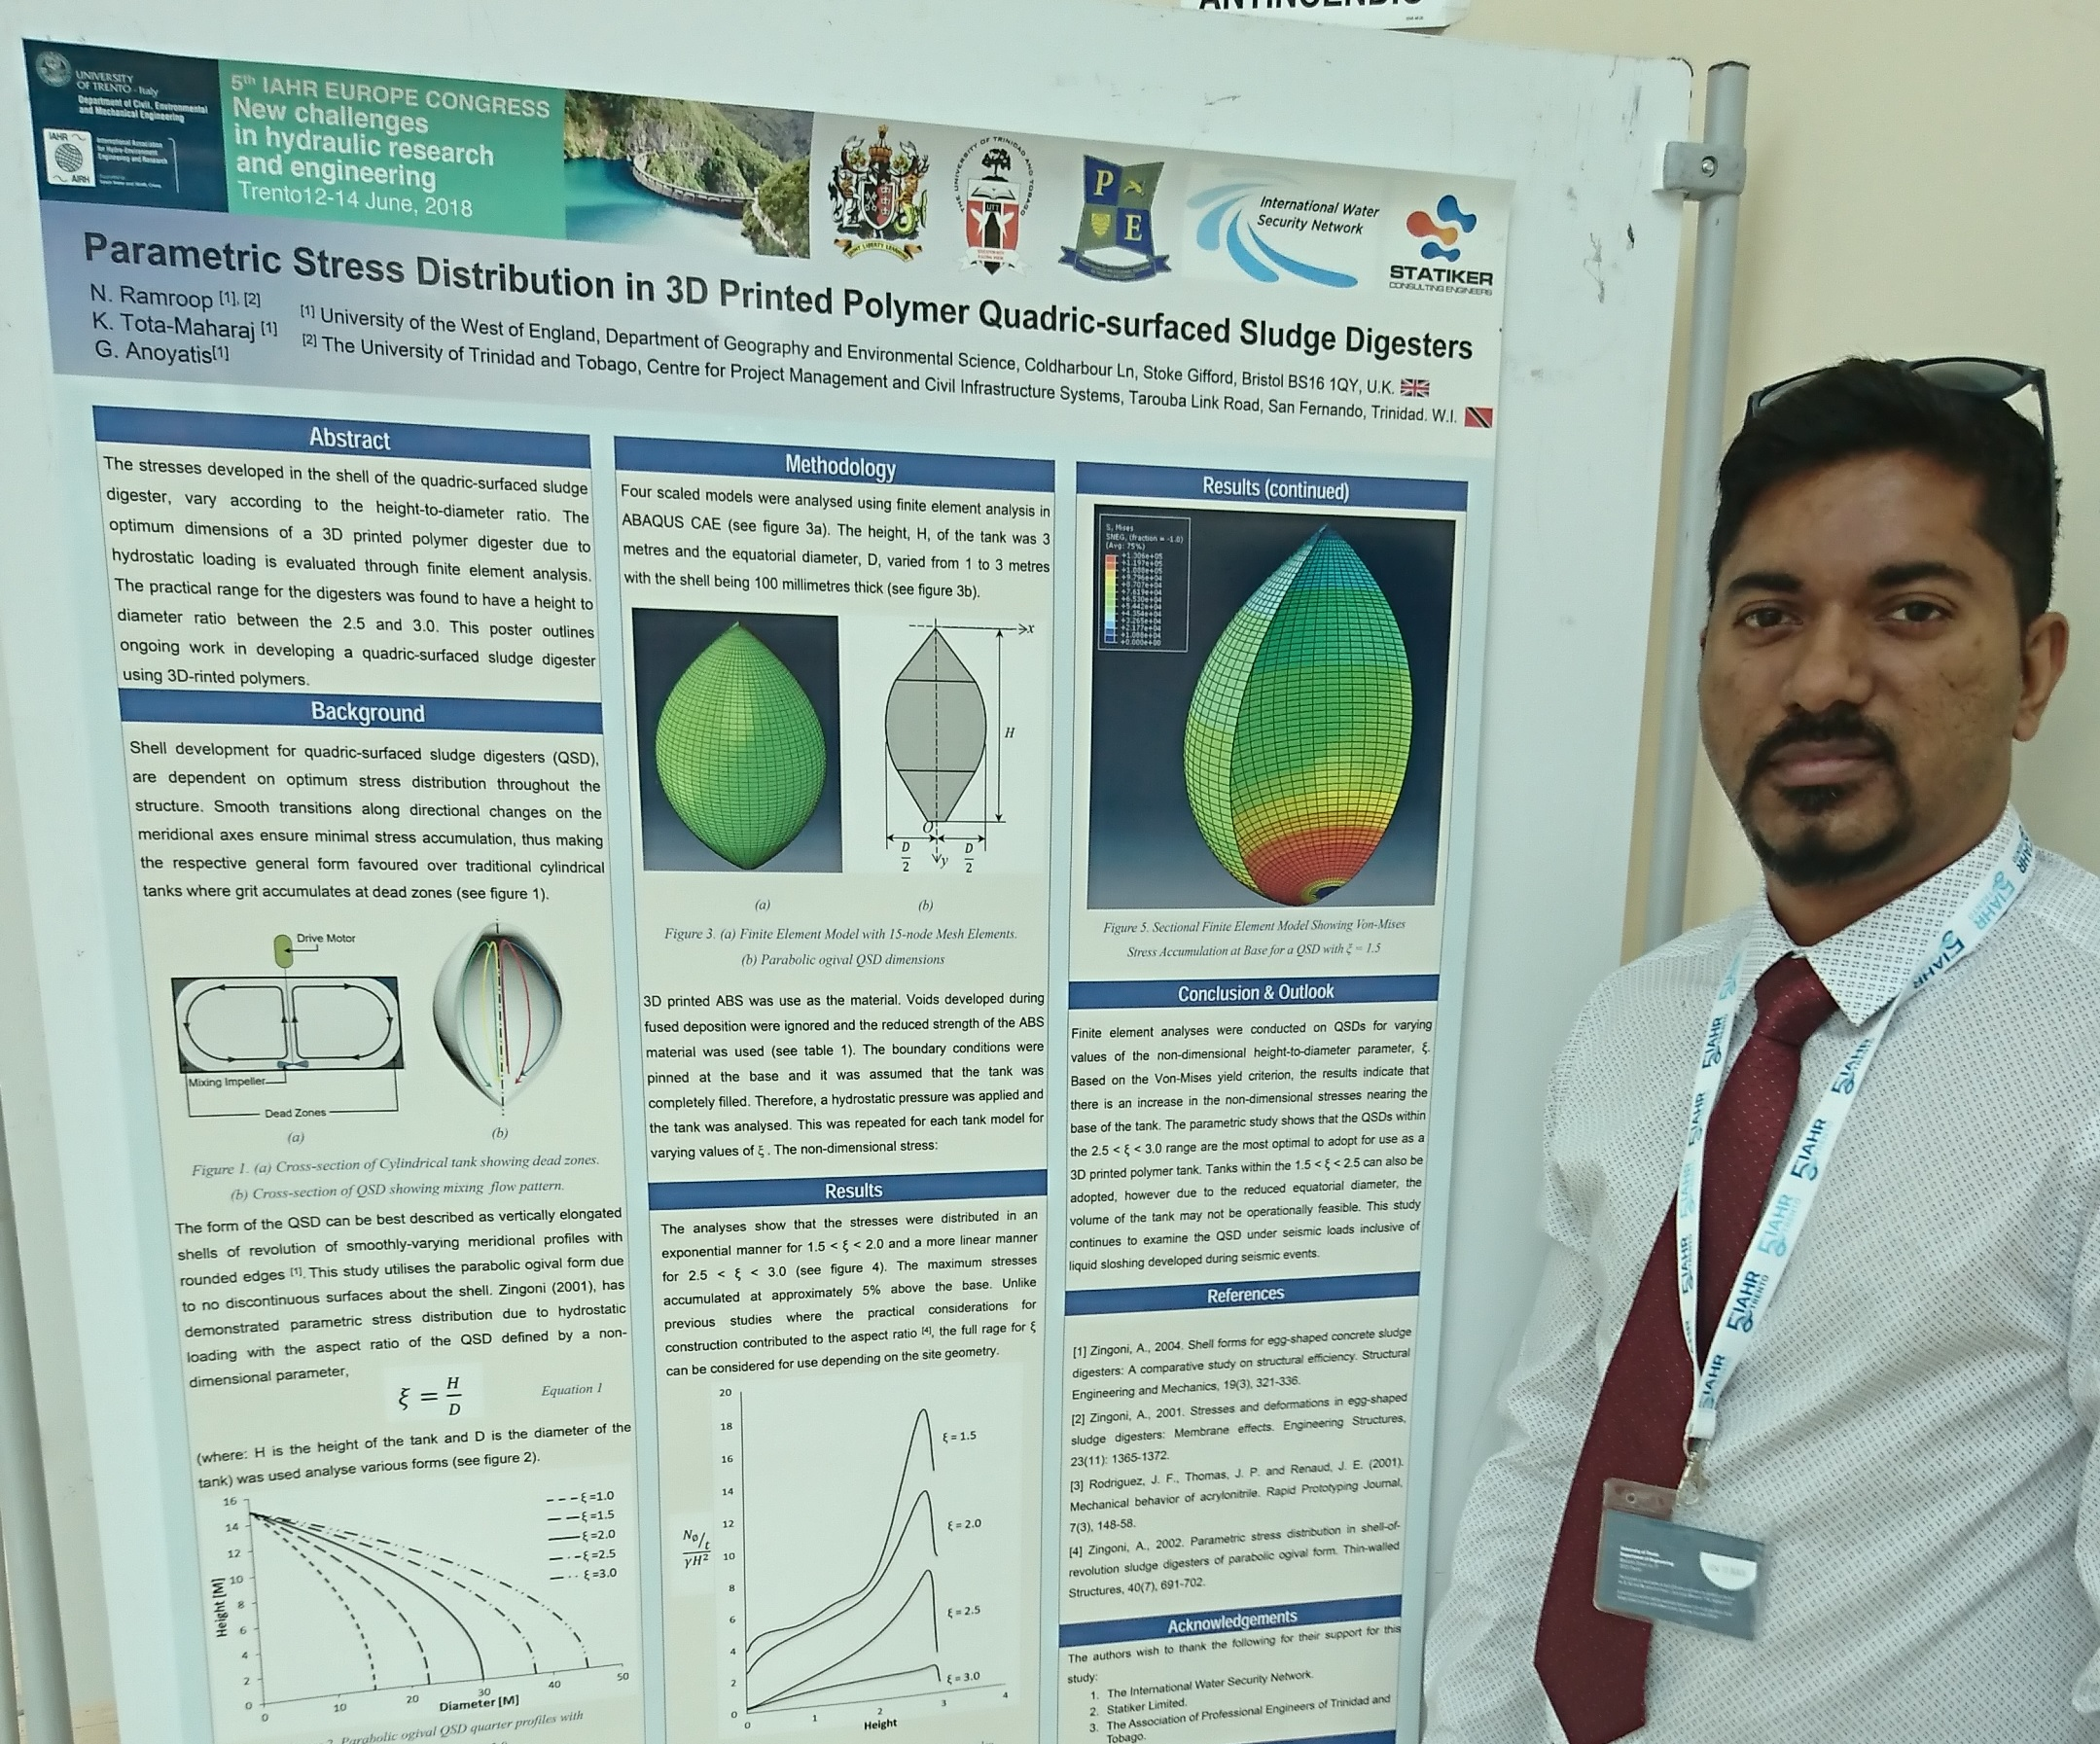 IWSN researchers attend IAHR European Congress in Italy